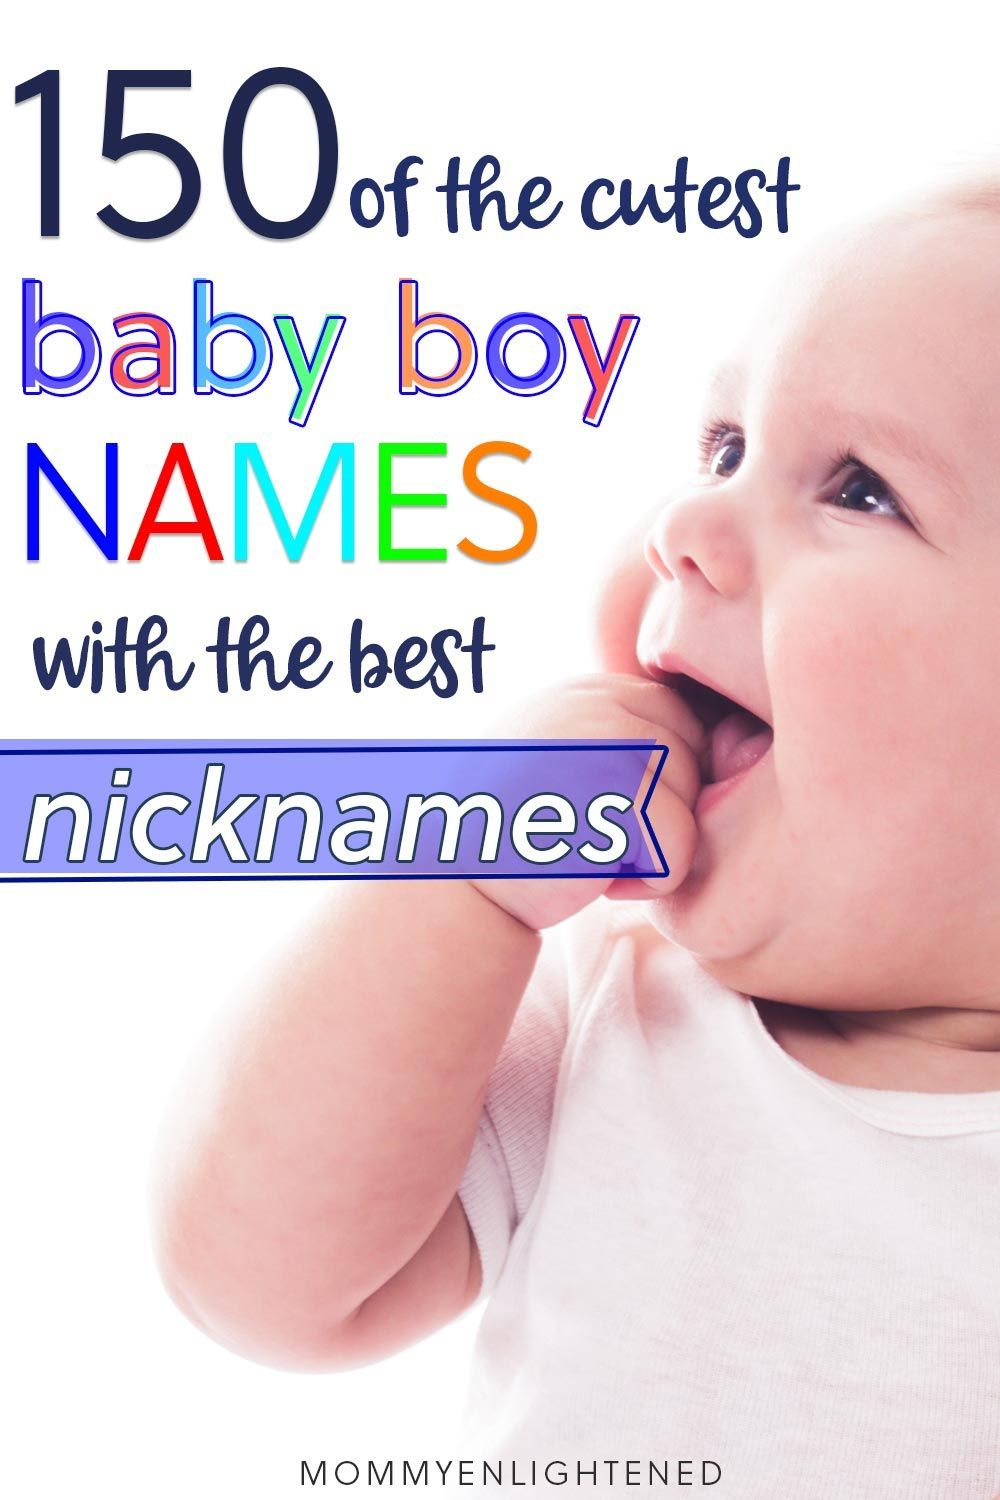 The Best Boy Names with Nicknames (that arent weird